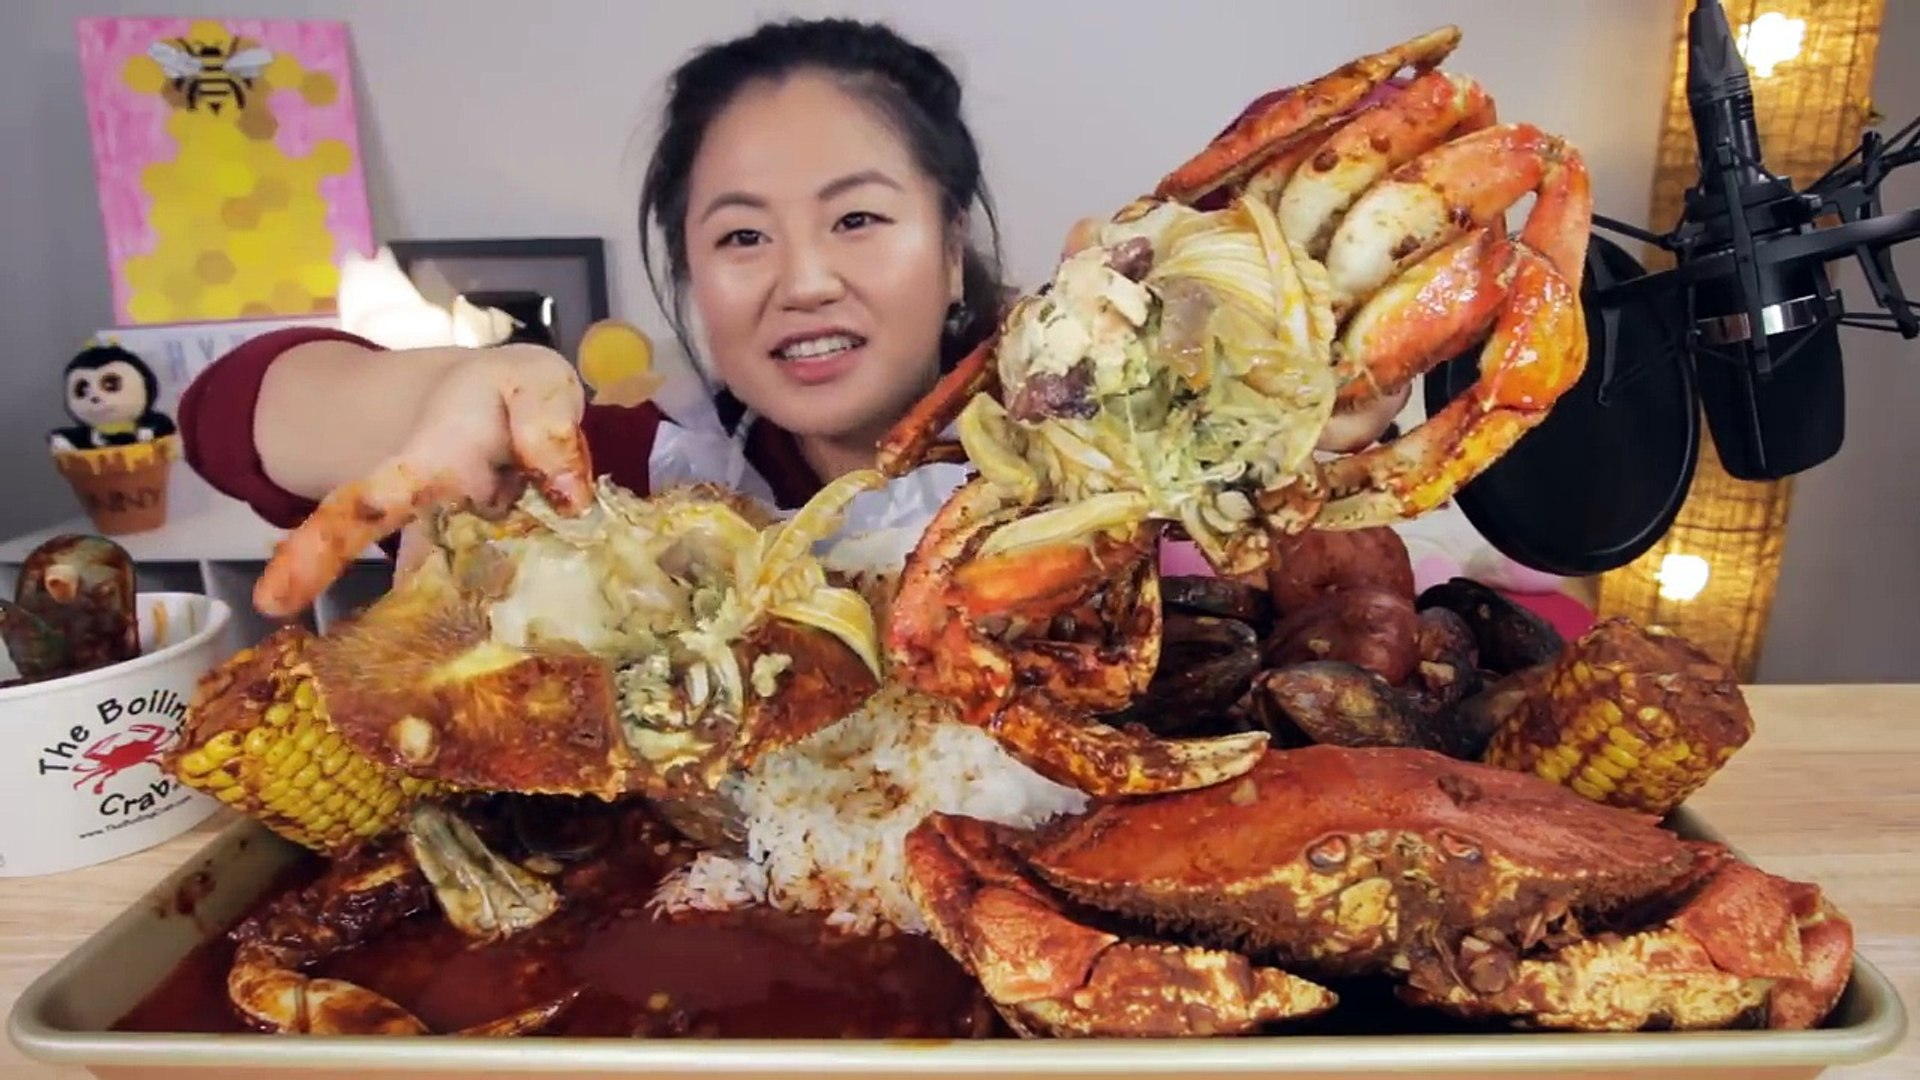 Spicy Dungeness Crab Seafood Boil Mukbang Video Dailymotion Asmr (autonomous sensory meridian response) is a euphoric experience identified by a tingling sensation that triggers positive feelings, relaxation and focus. spicy dungeness crab seafood boil mukbang